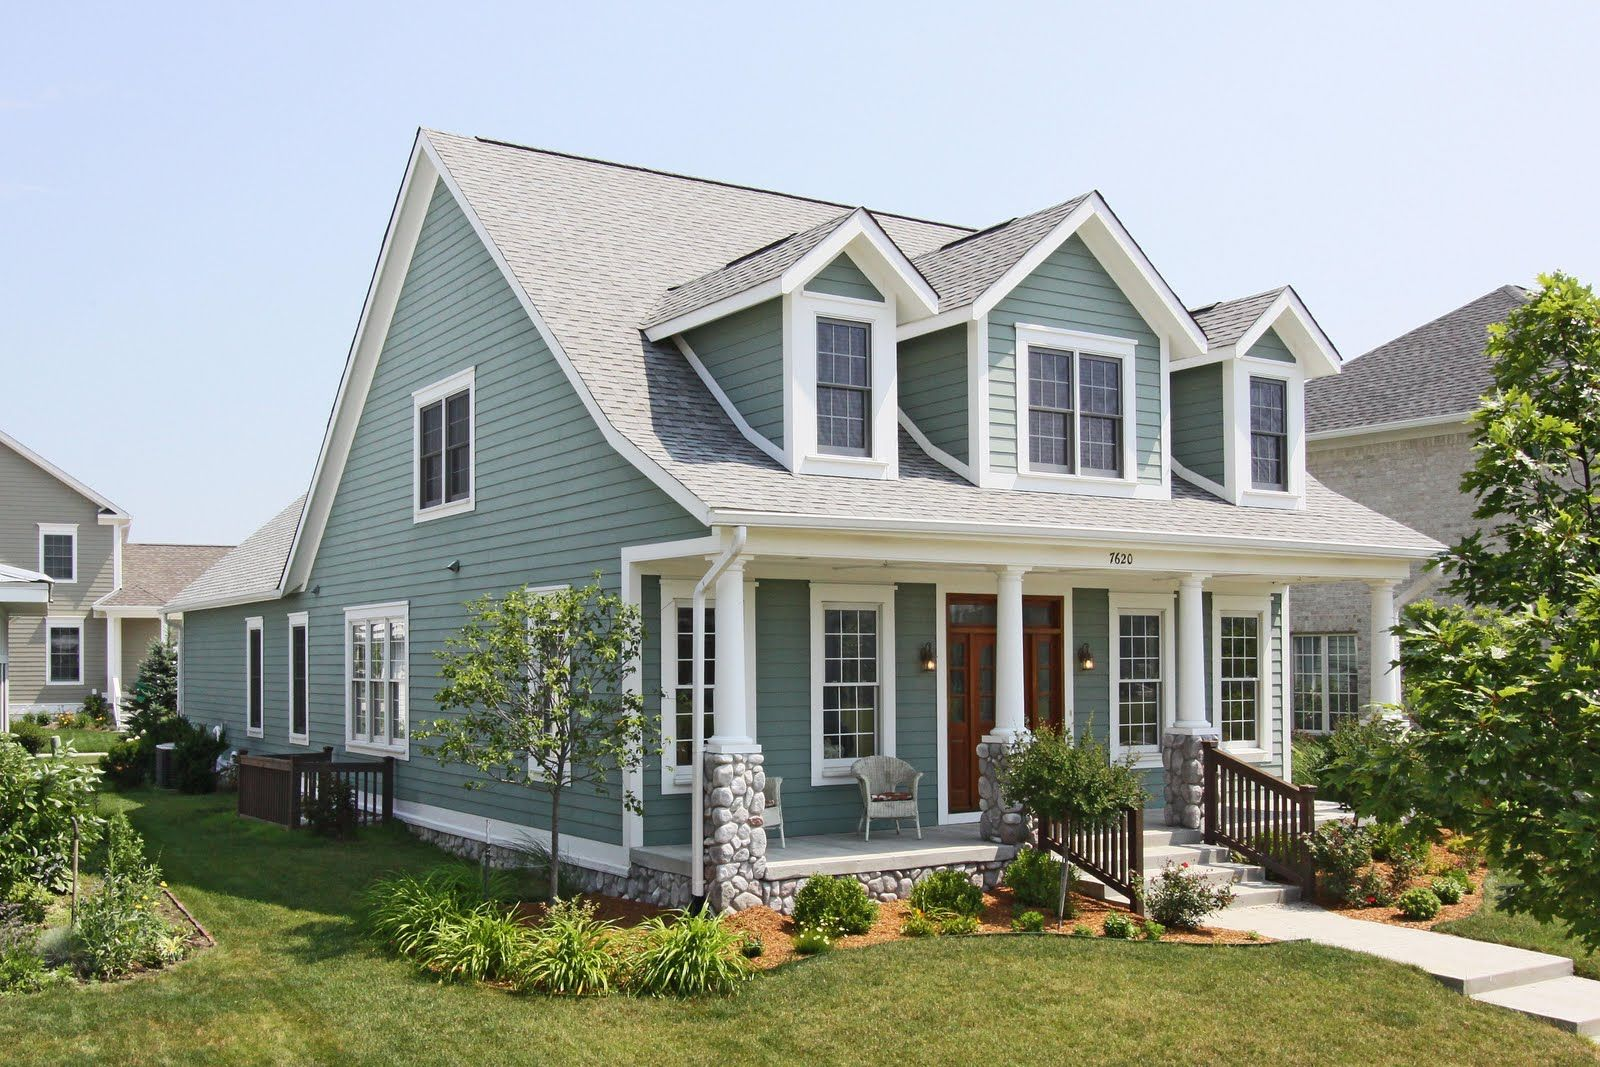 Cape cod homes with porches new listing in stonegate for Cape cod house exterior design